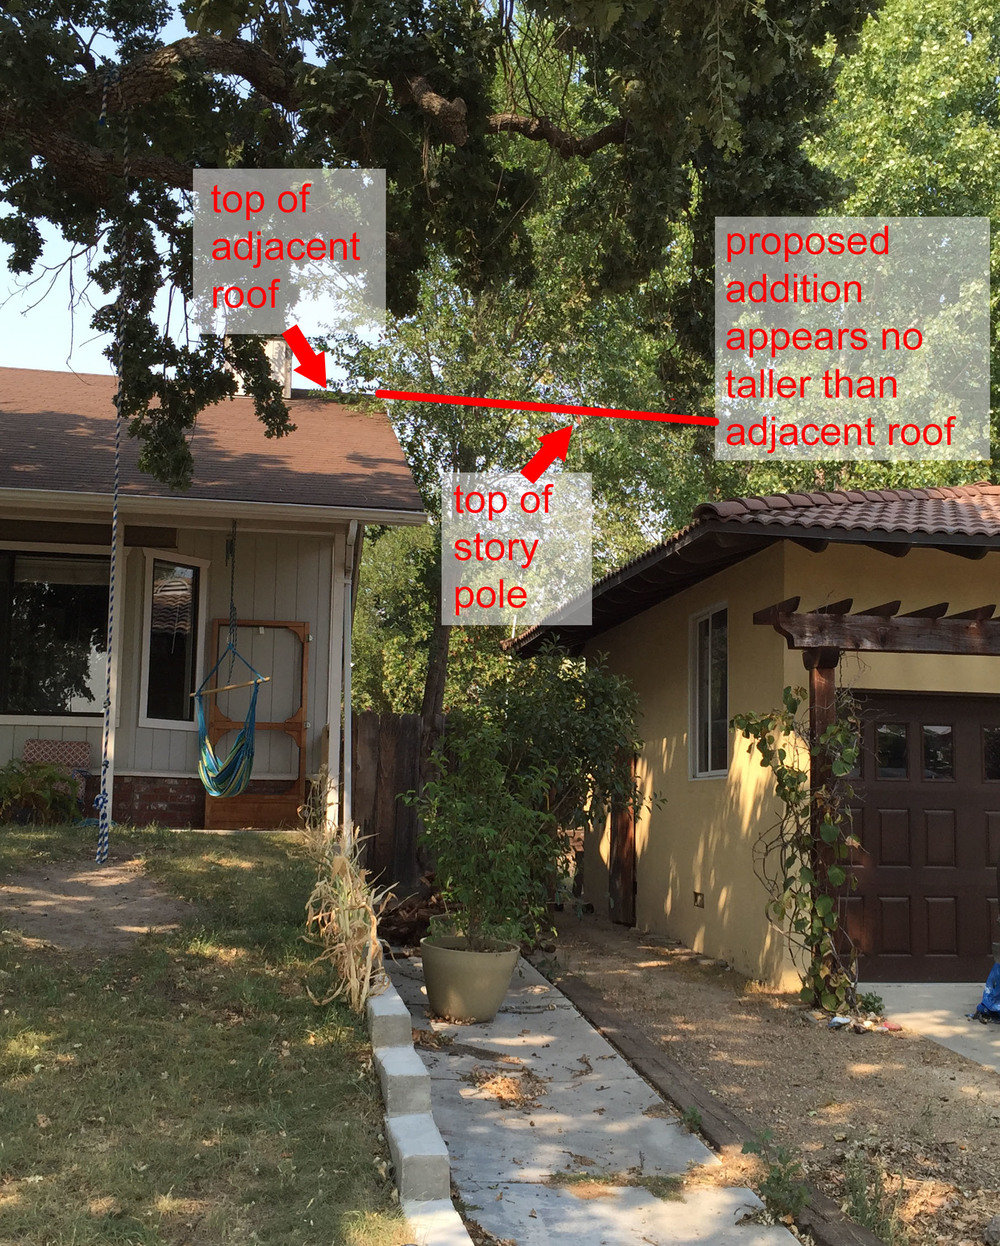 Studying height of future 2-story addition (with flat roof) relative to adjacent home's roof.